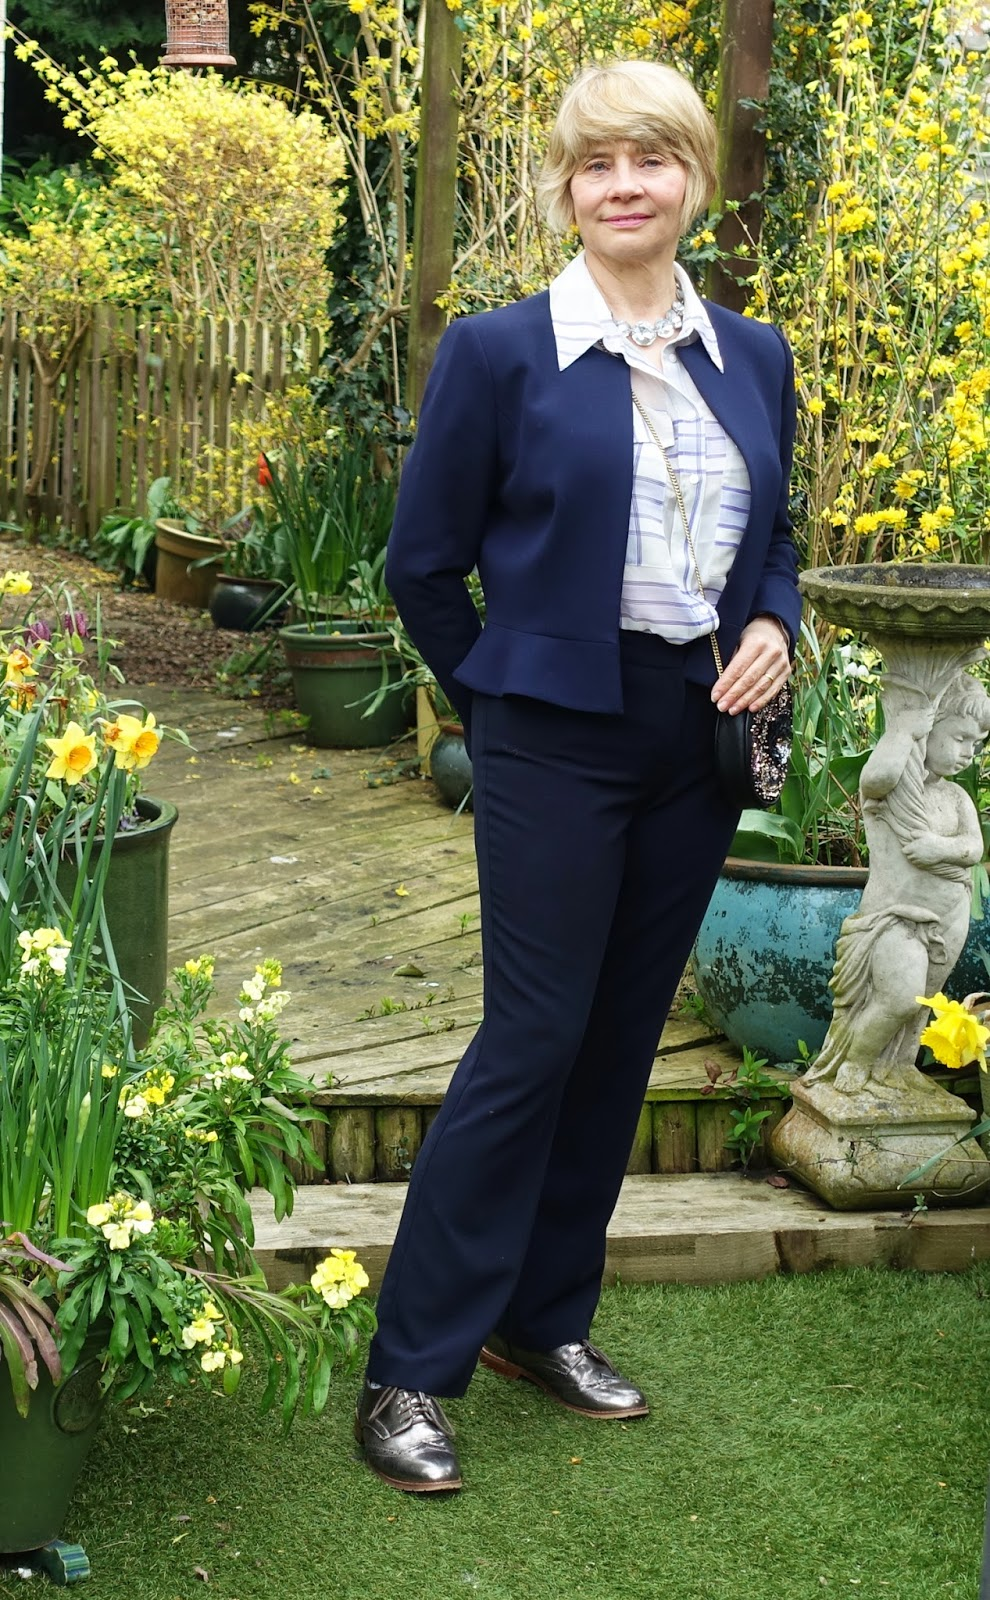 A look suitable for the office with the blouse paired with navy trousers, a navy peplum jacket and metallic brogues.